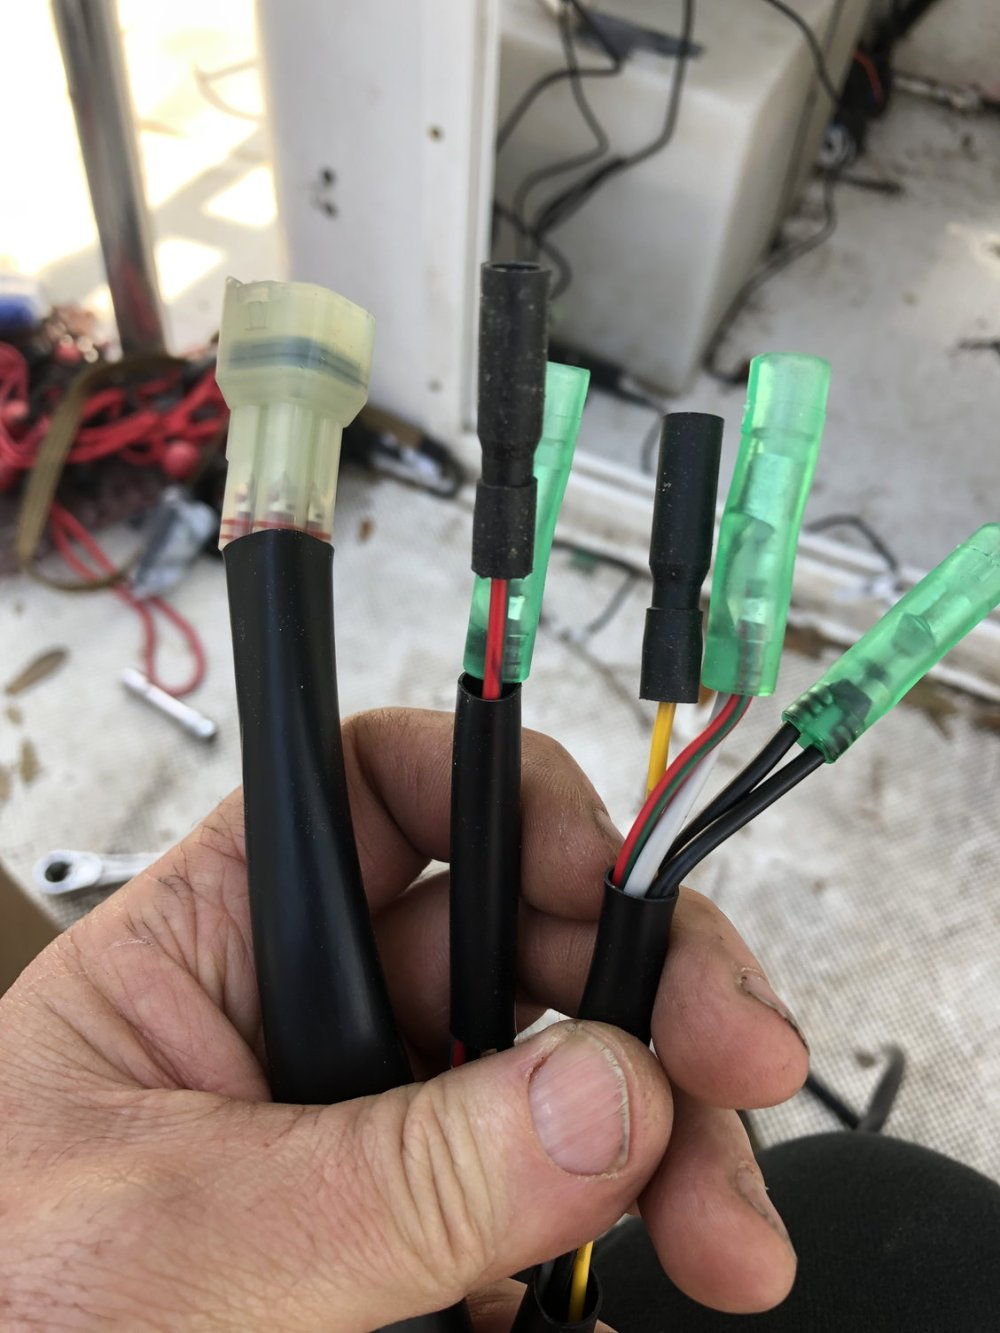 medium resolution of  pink from sending unit do i still need to use the plug in connectors for anything assuming will still need for ignition but how do i connect without